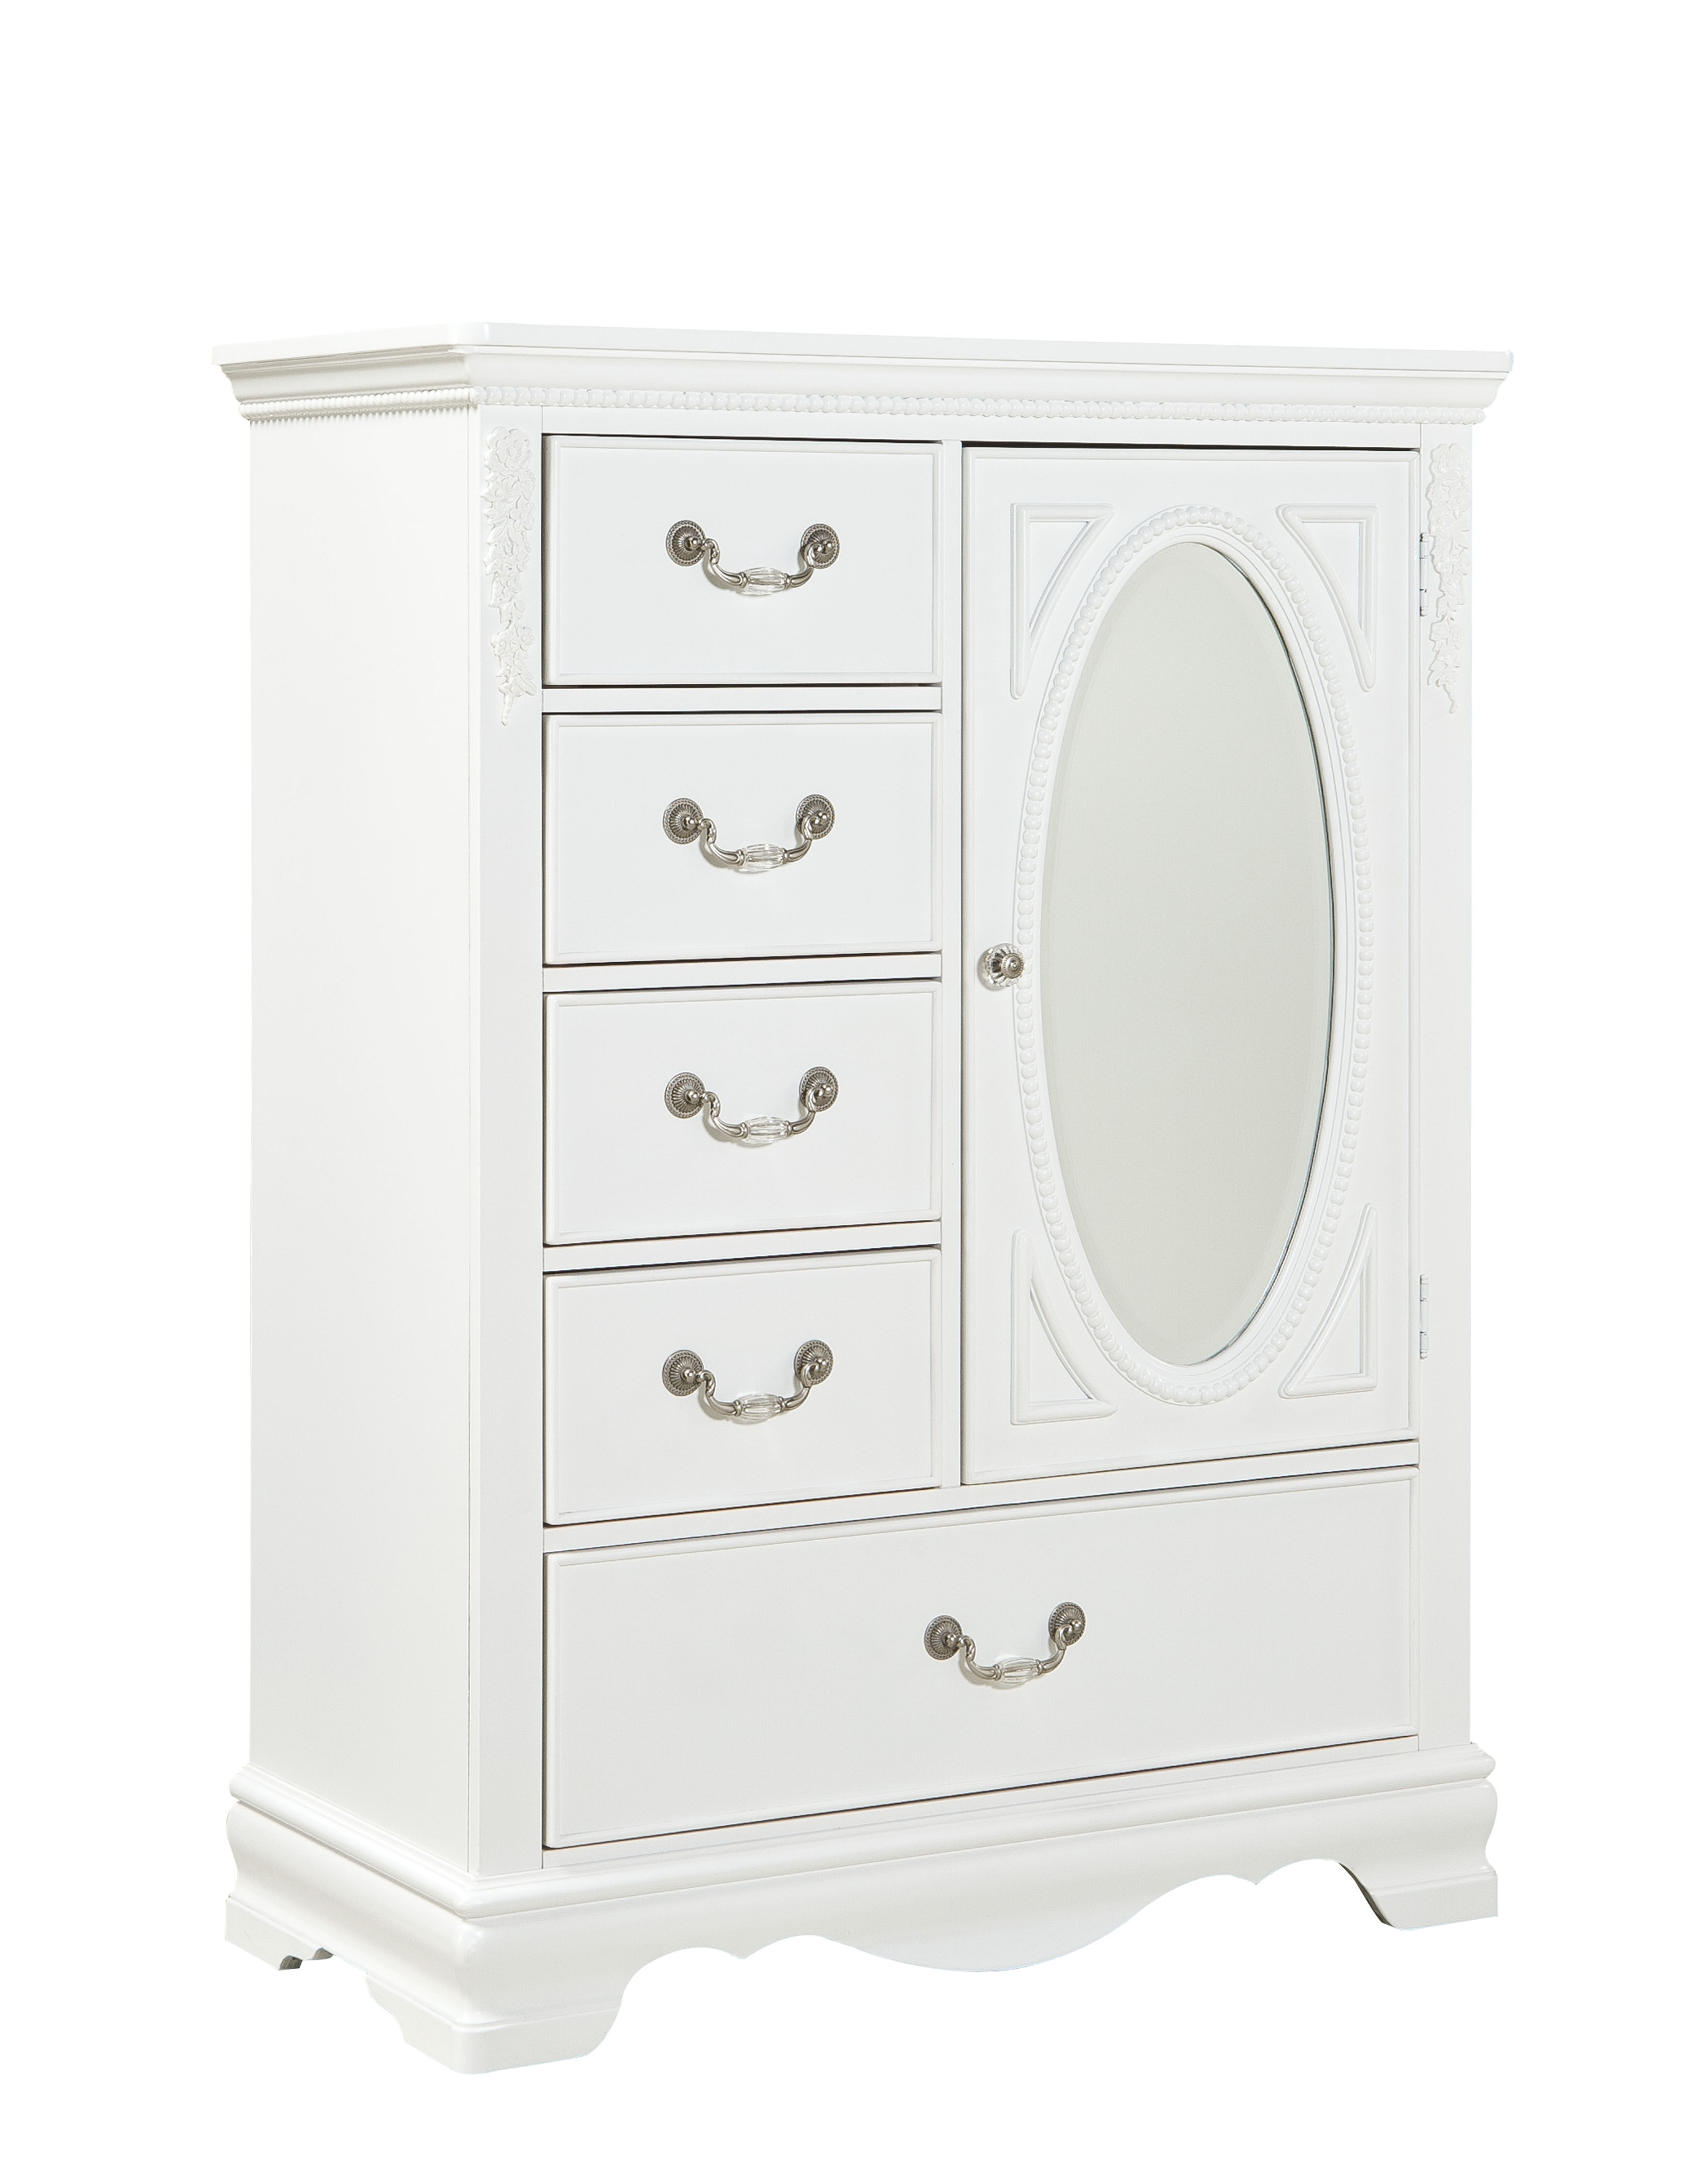 auli terms ikea brochure read wardrobe armoire glass about white the mirror pax in guarantee with cool year